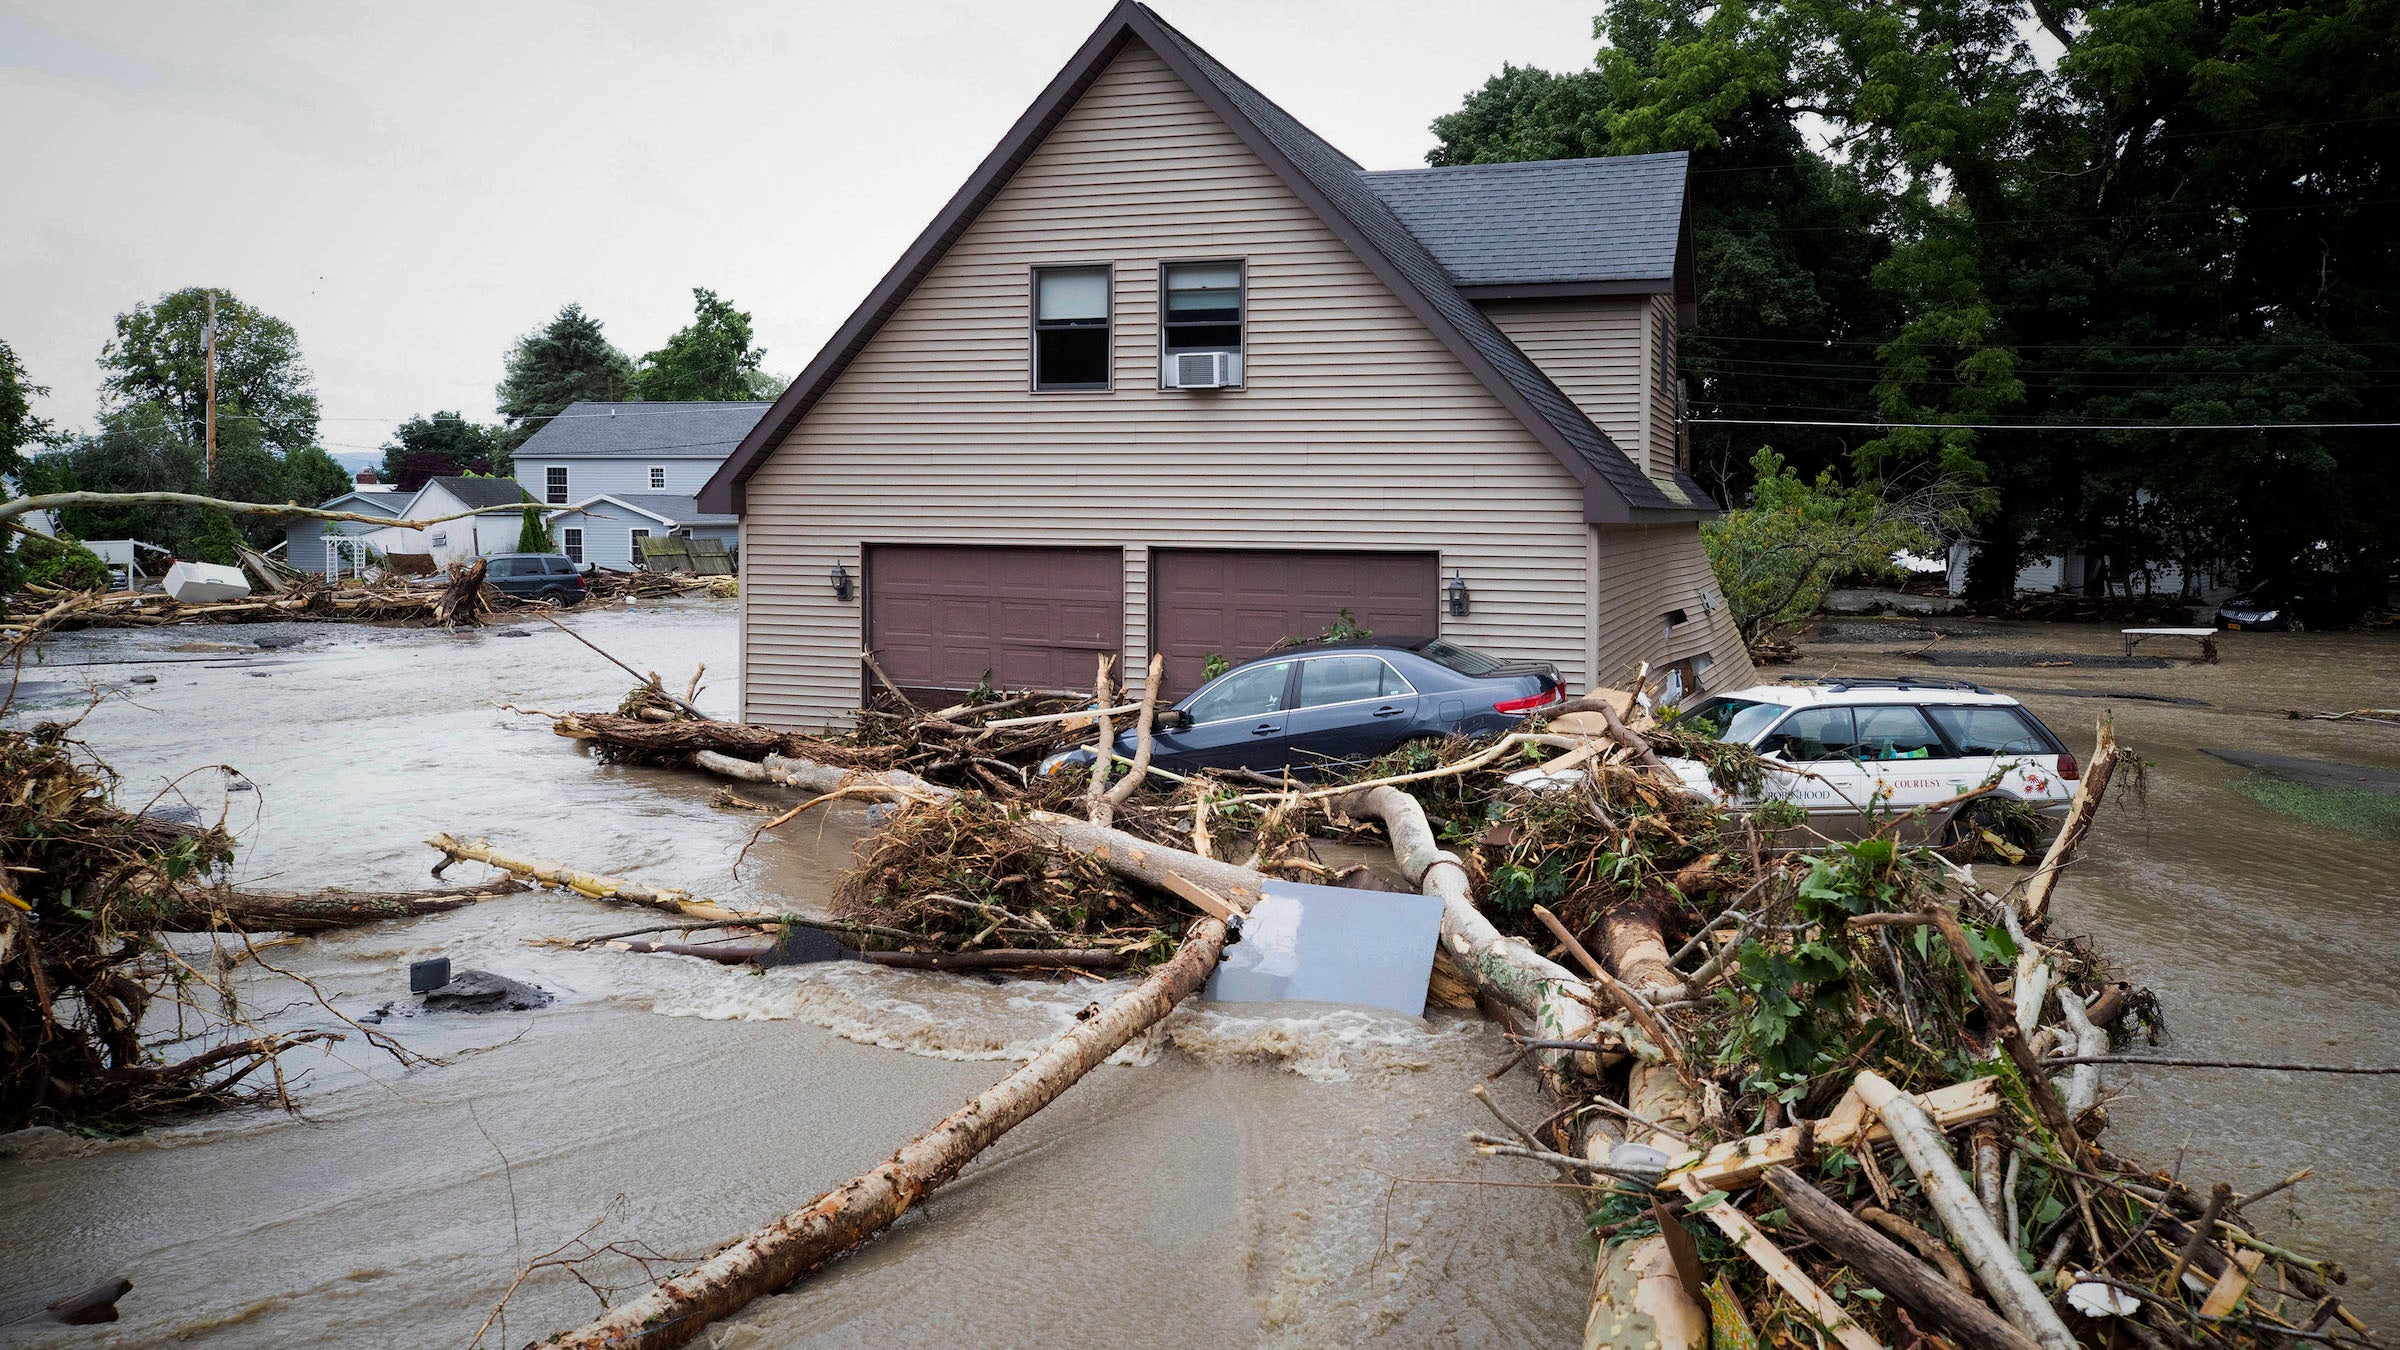 Northeast Floods Prompt More Rescues, Emergency Declaration in New